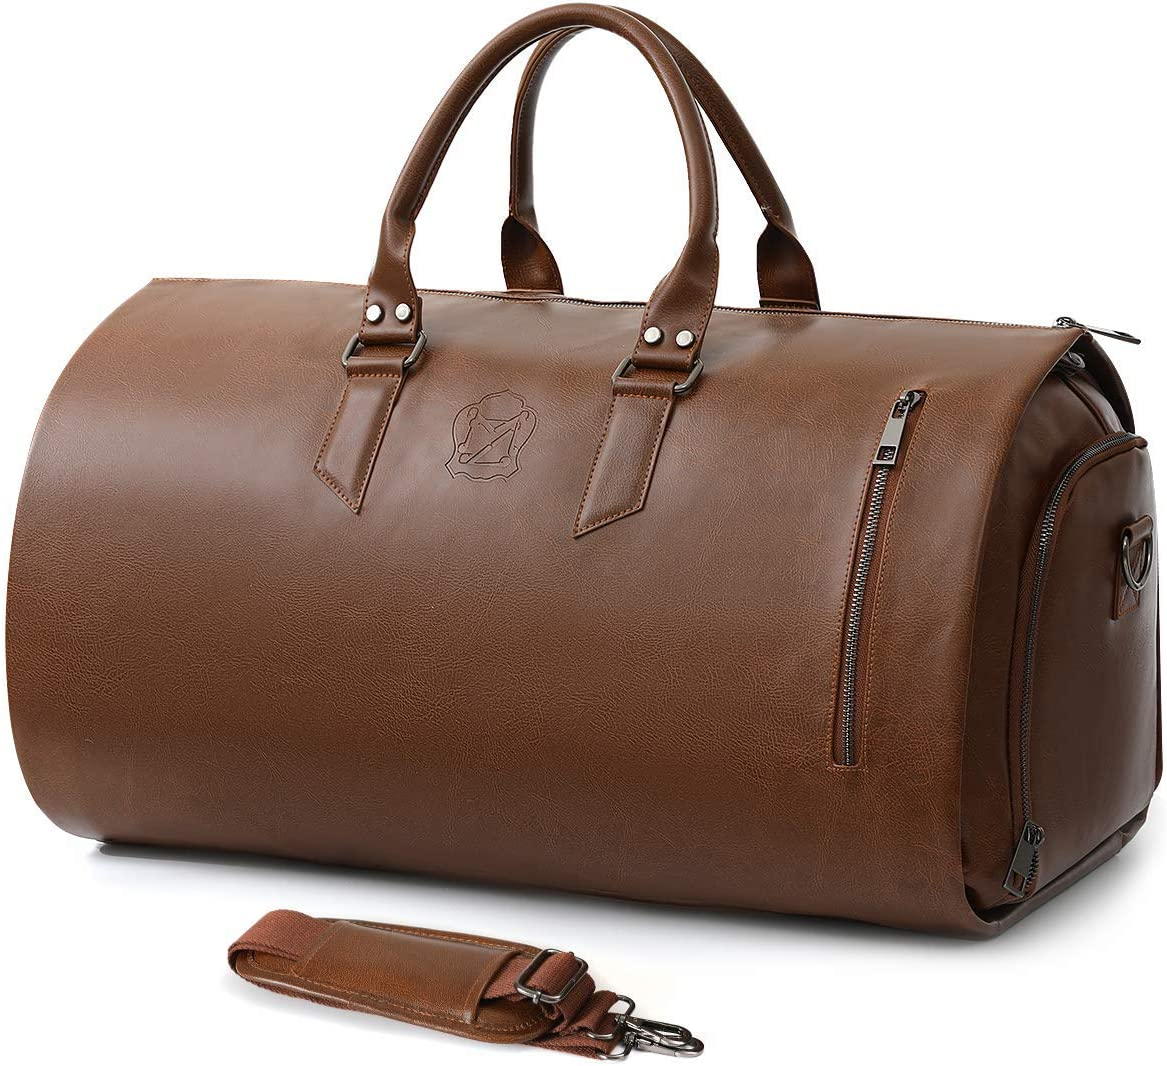 Convertible Leather Garment Bag with Shoes Compartment, Large Carry on Duffel Bag for Men Women - Waterproof Travel Weekender Suit Bag Brown